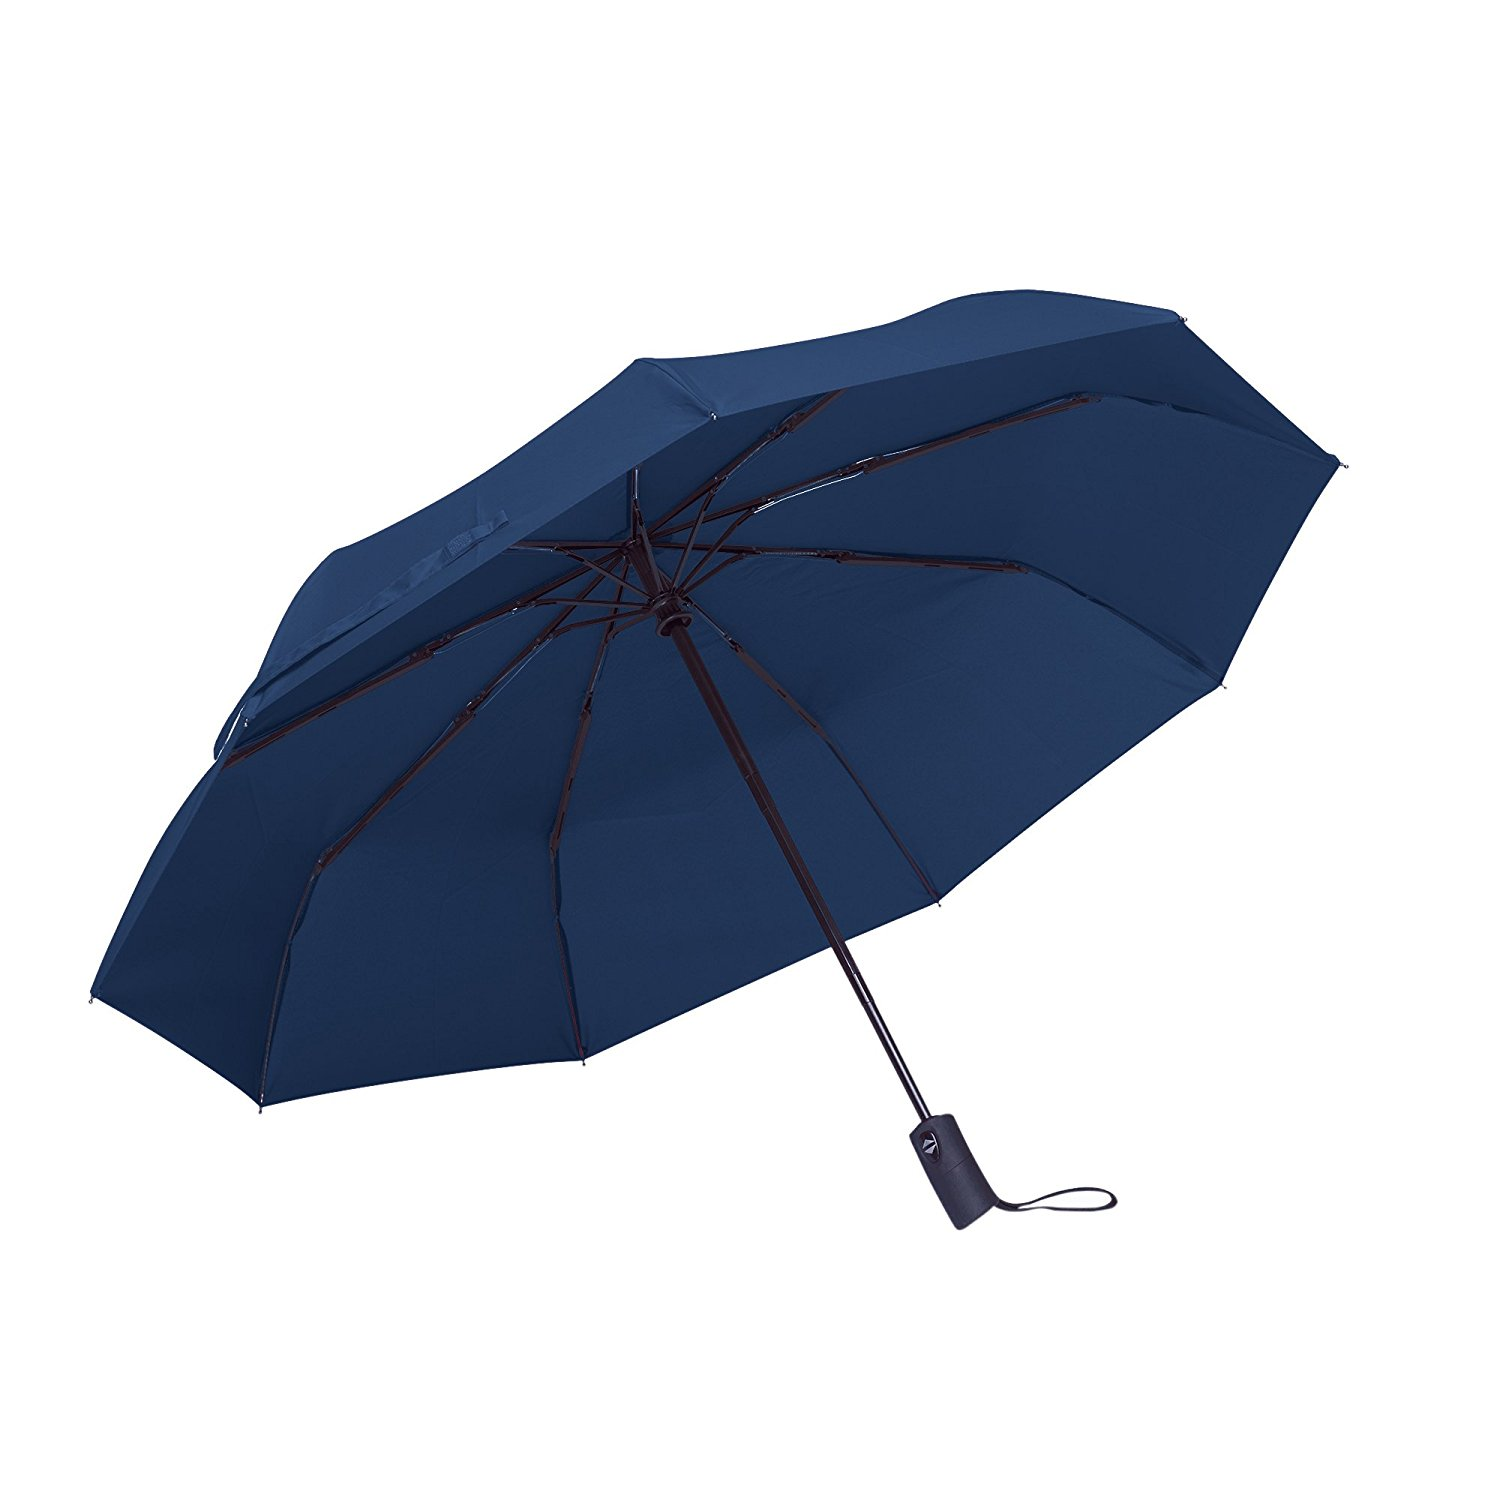 10 Best Travel Umbrellas For 2018 Small And Durable